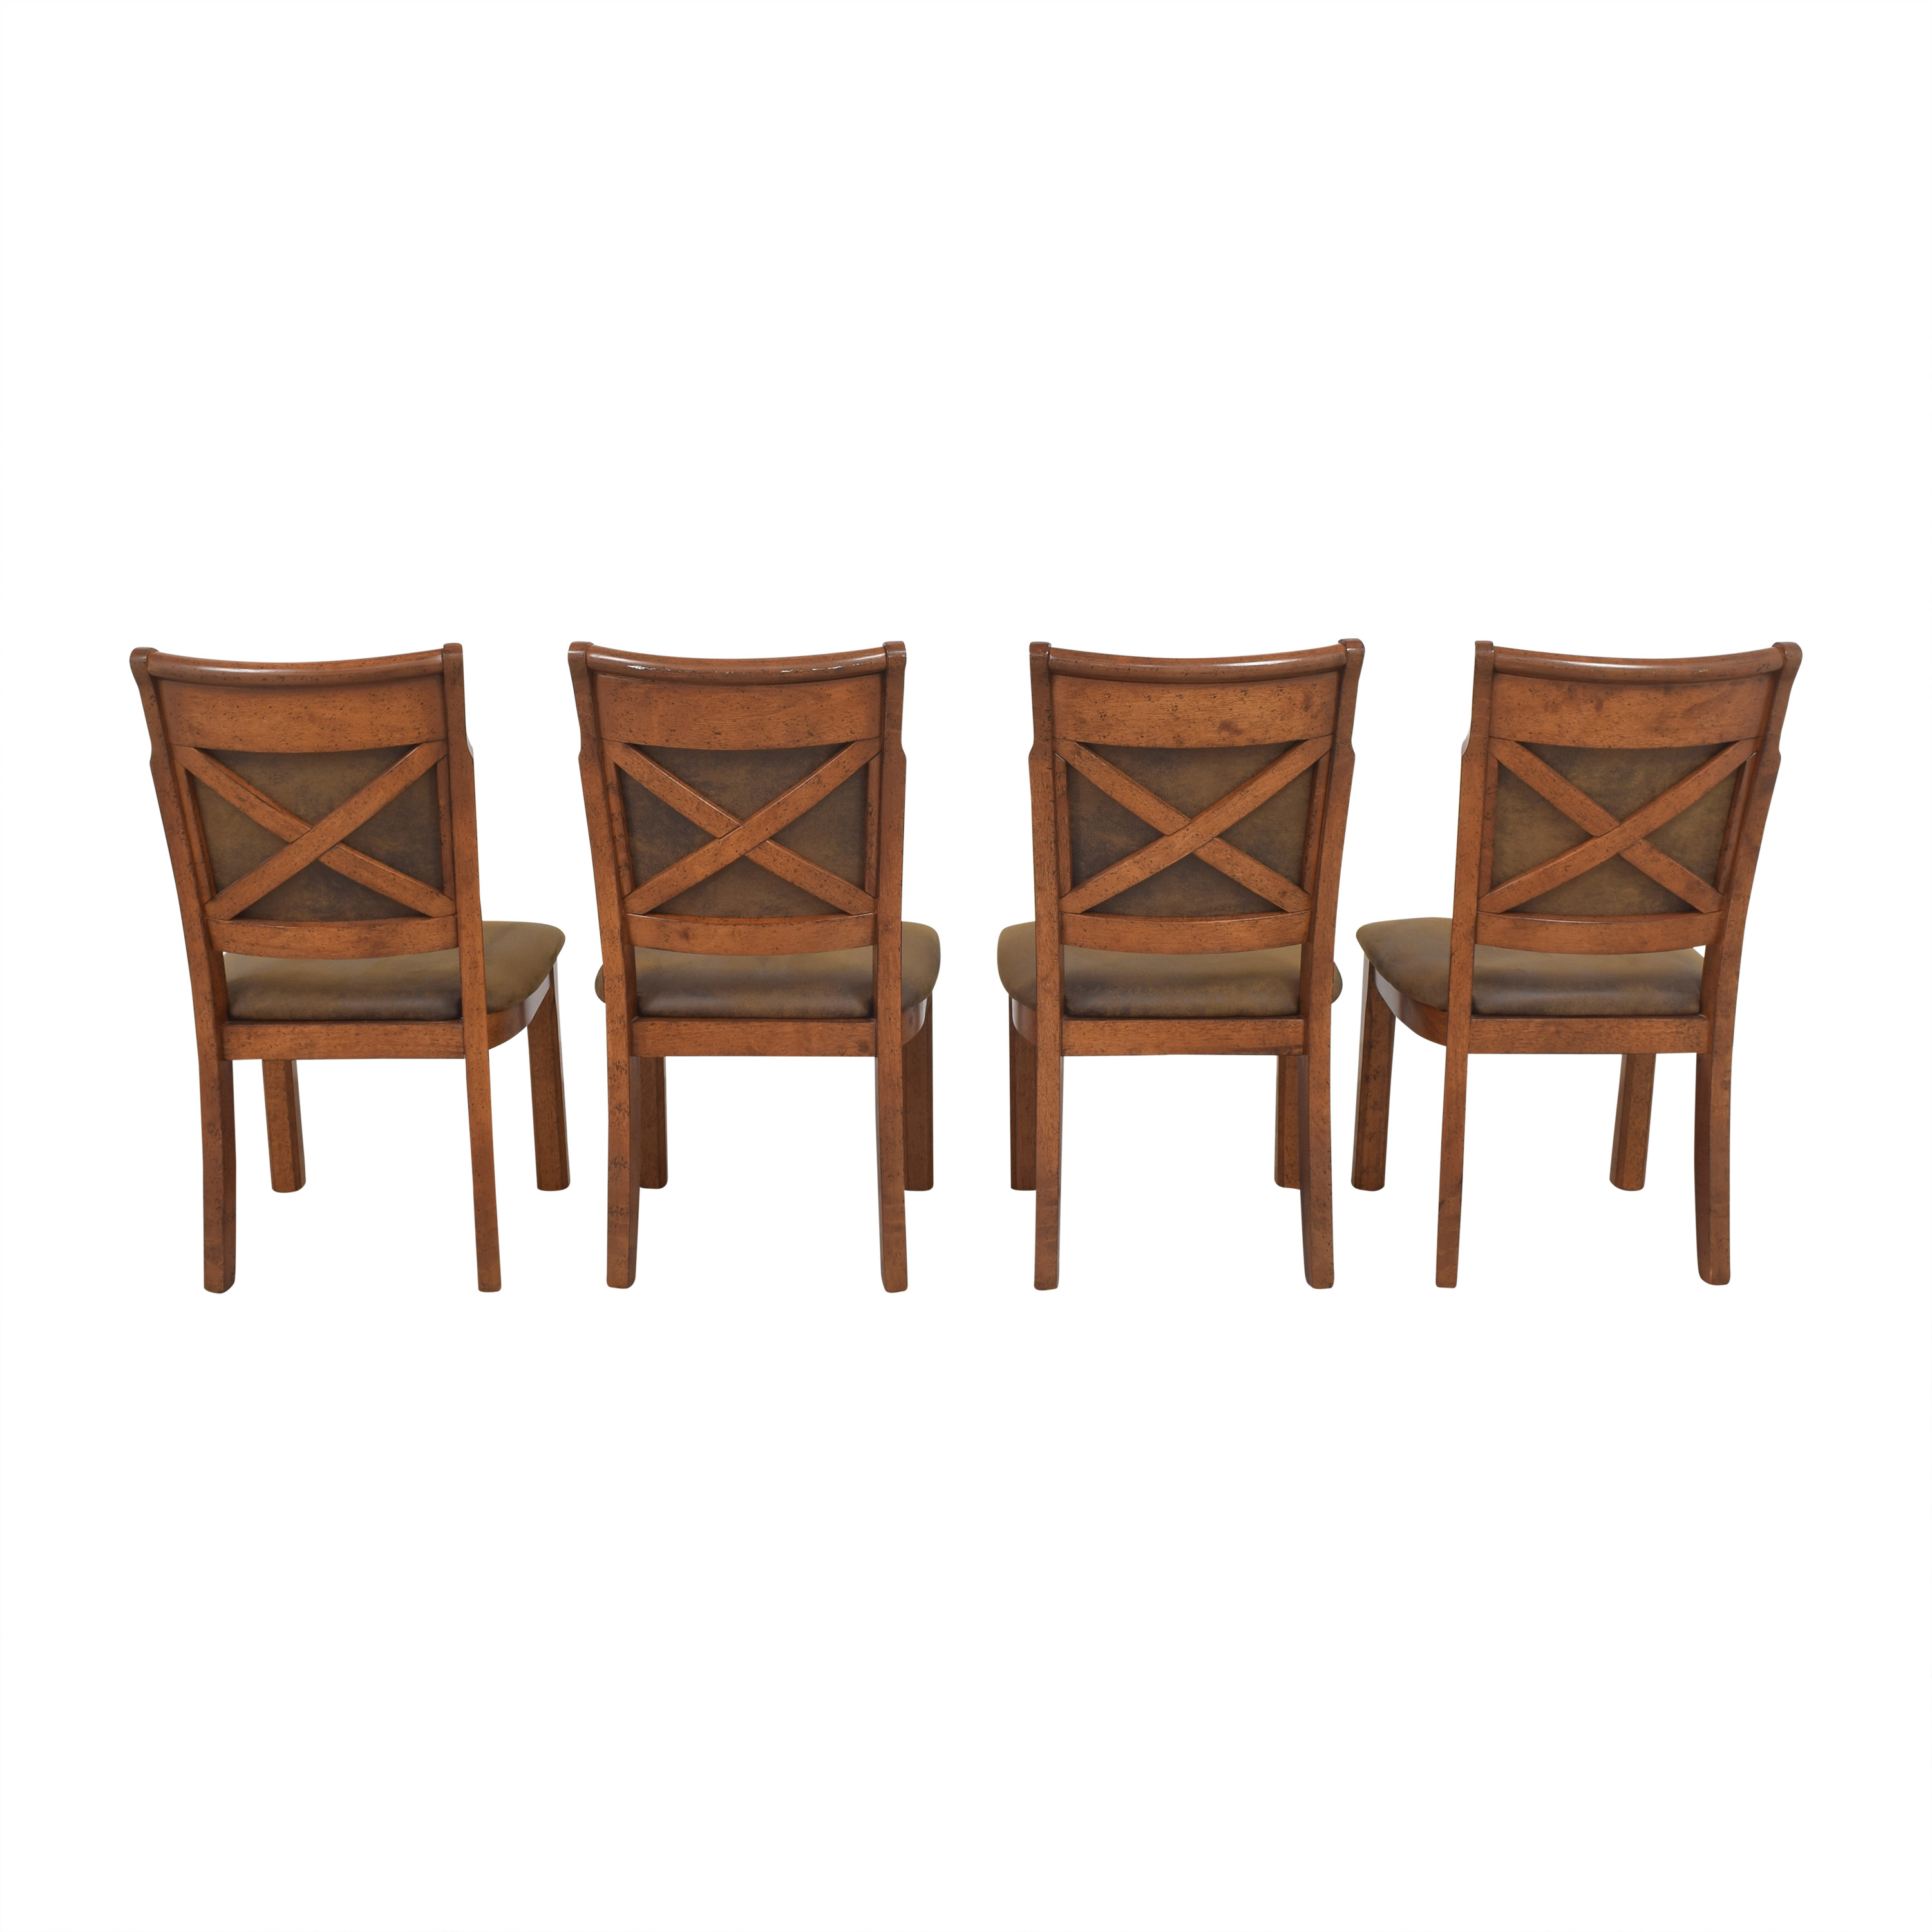 shop Raymour & Flanigan Soleste Dining Chairs Raymour & Flanigan